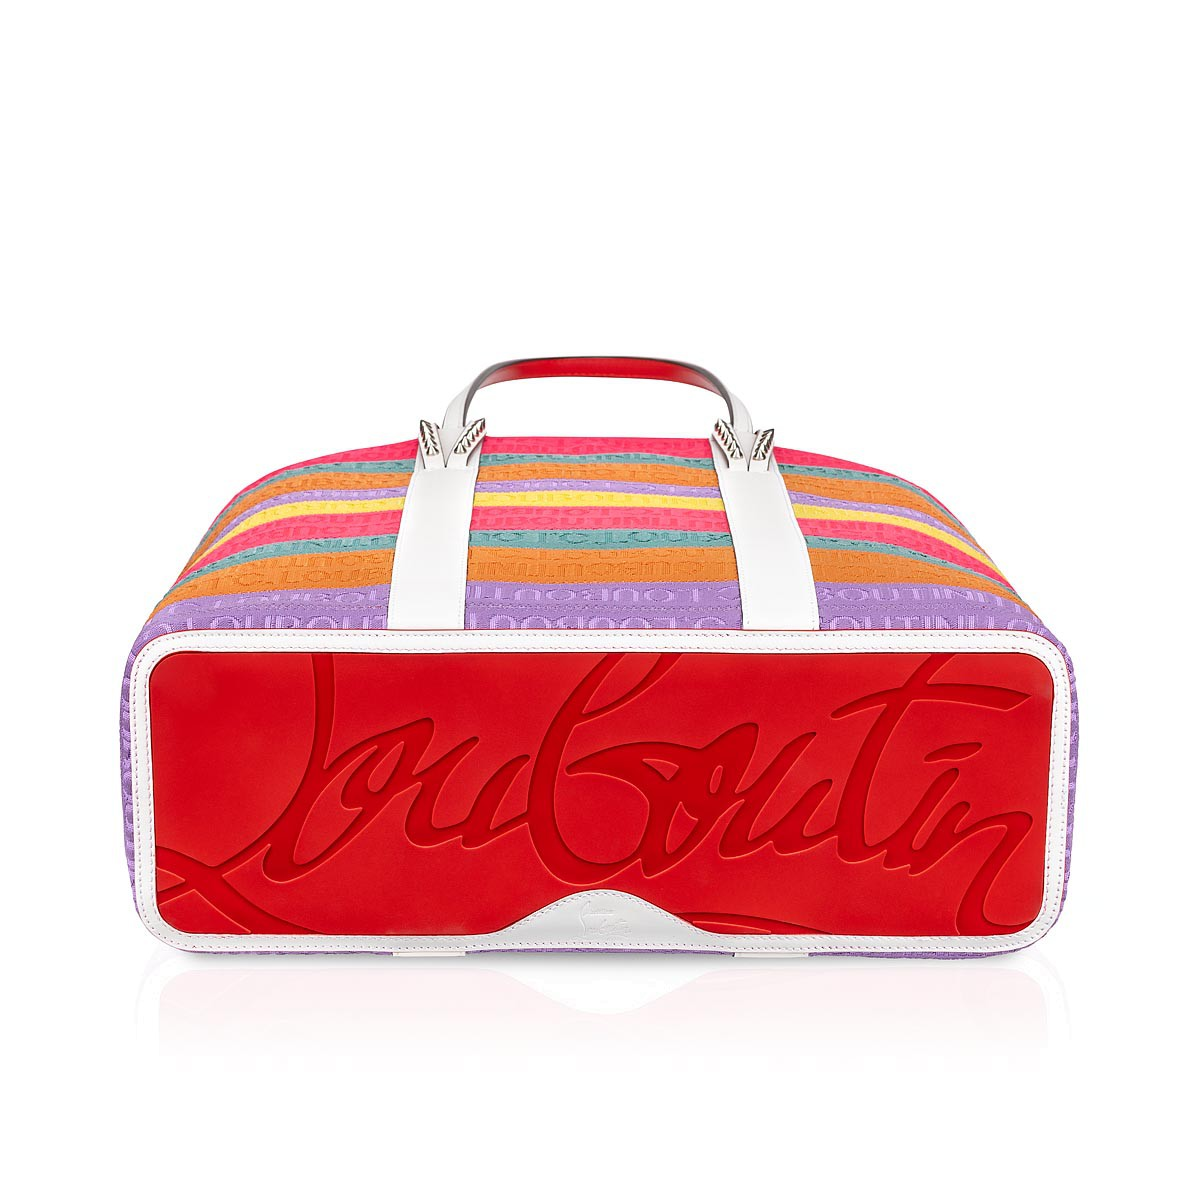 Bags - Cabata  Cl Strap - Christian Louboutin